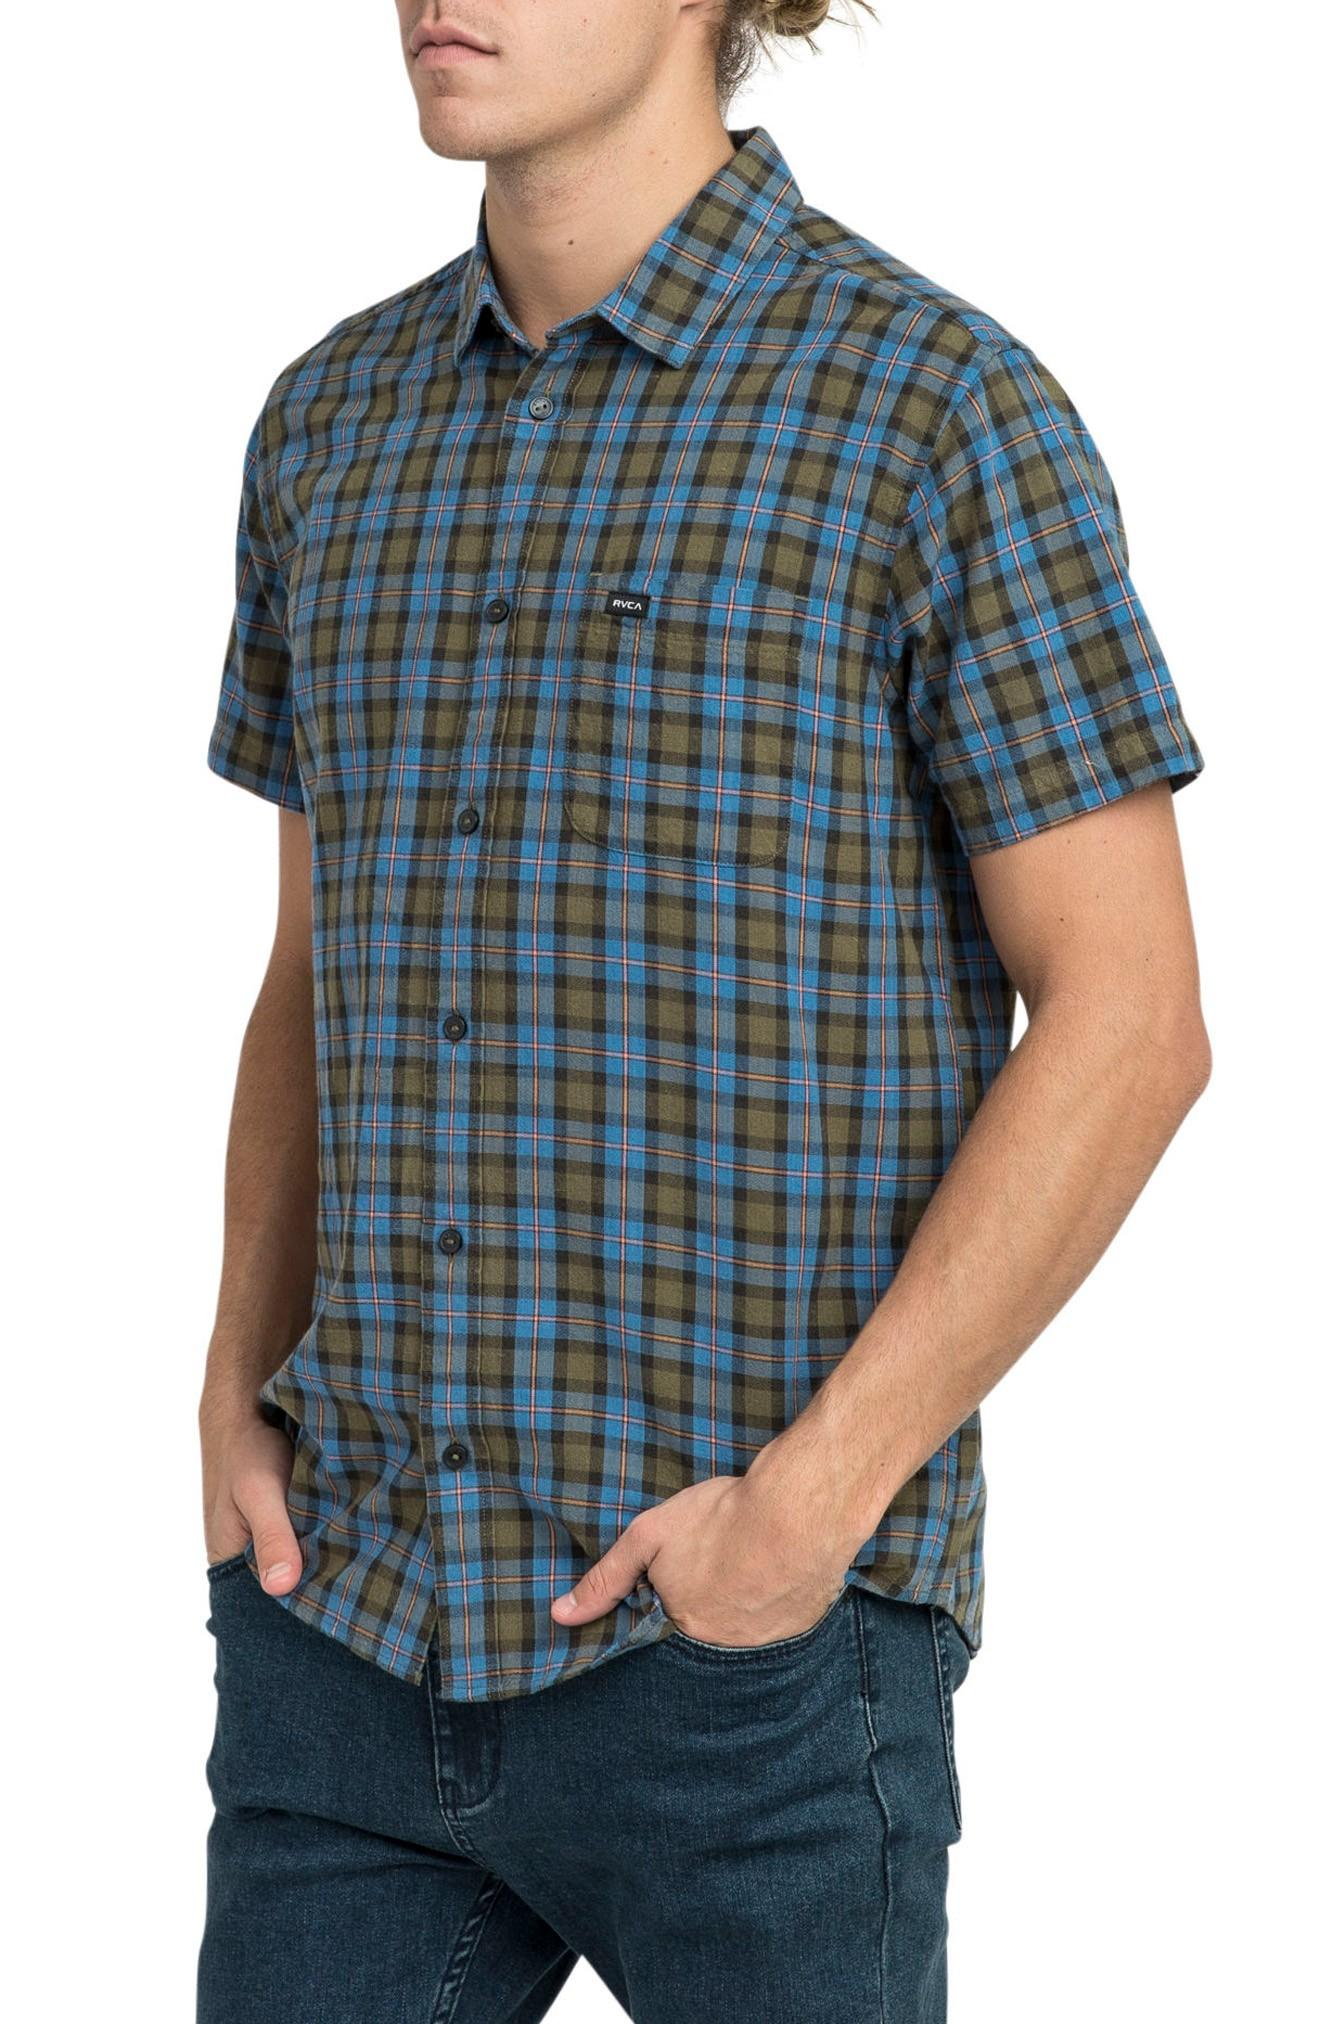 Rvca That'll Do Plaid Shirt In Burnt Olive